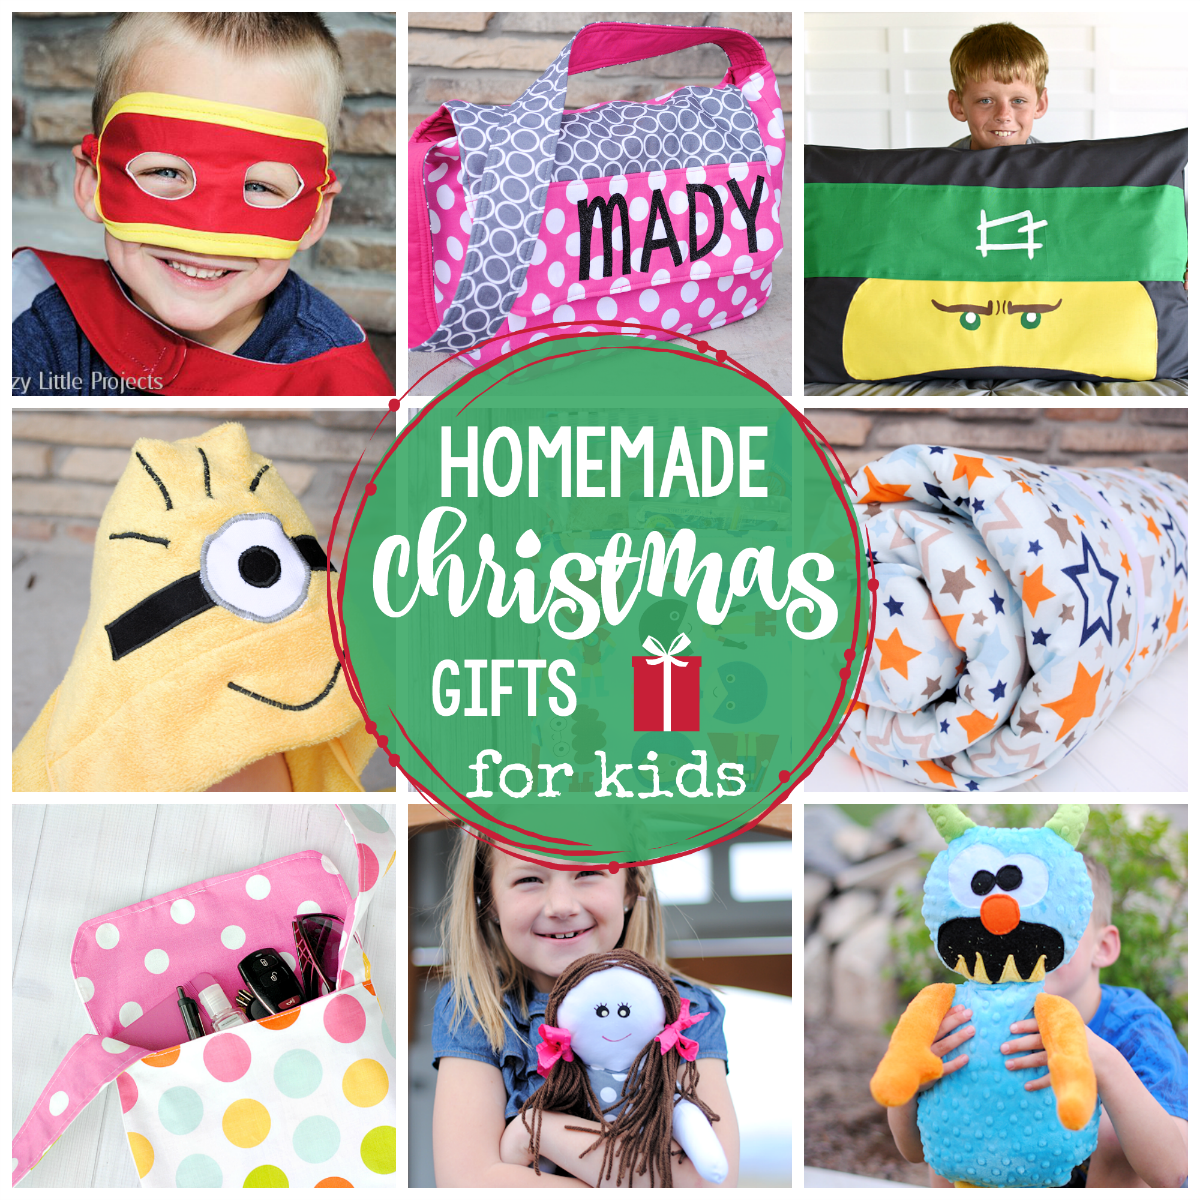 25 Homemade Christmas Gifts for Kids - Crazy Little Projects